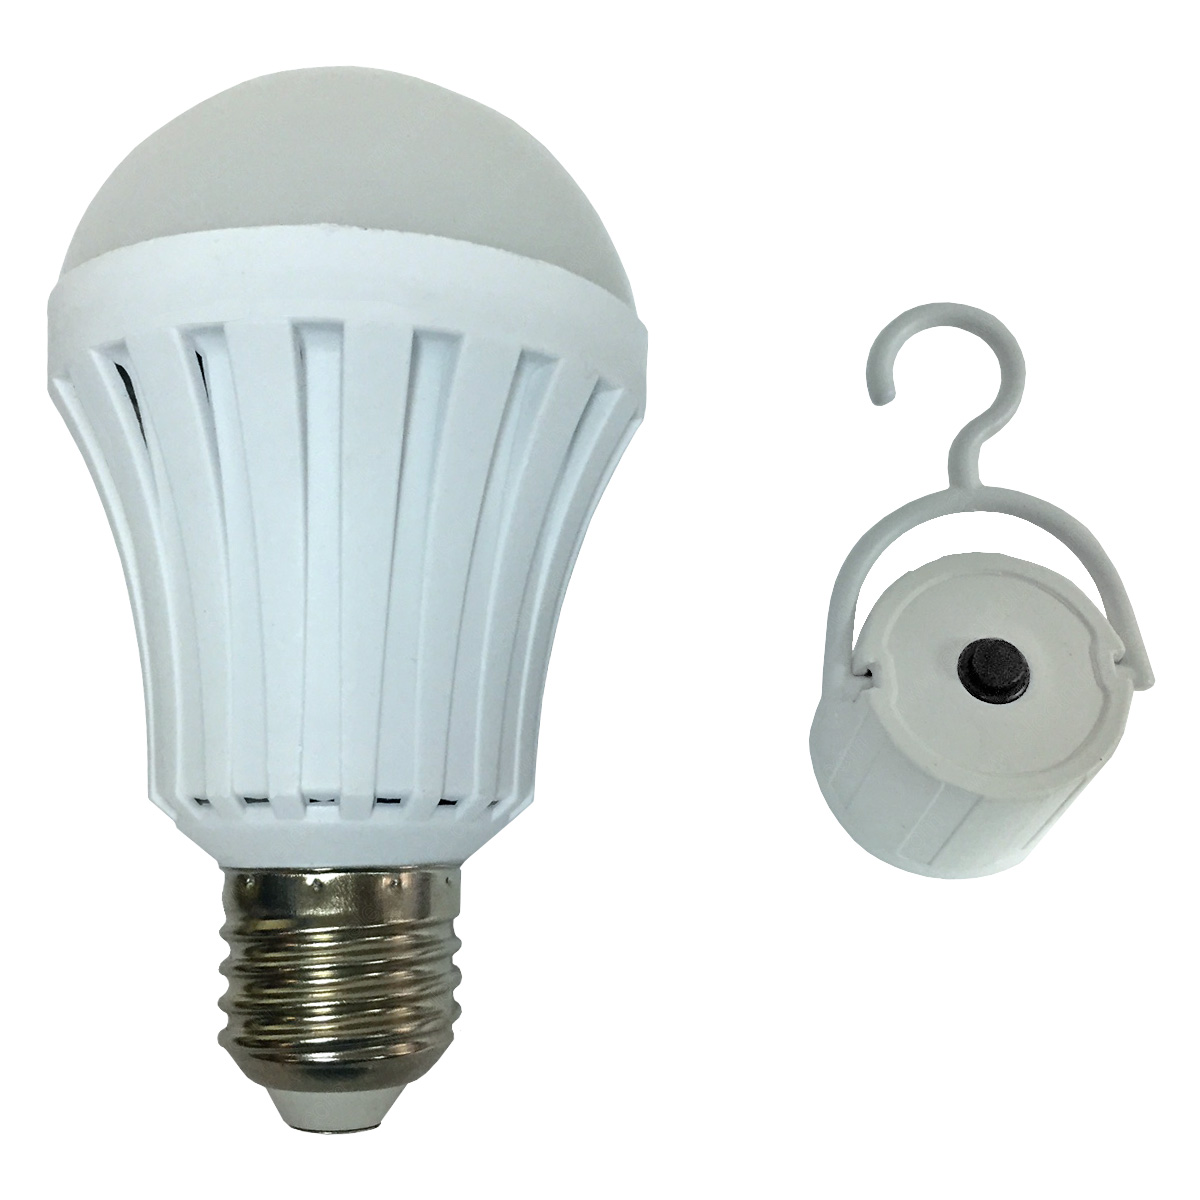 Rechargeable Emergency Portable LED Light Bulb